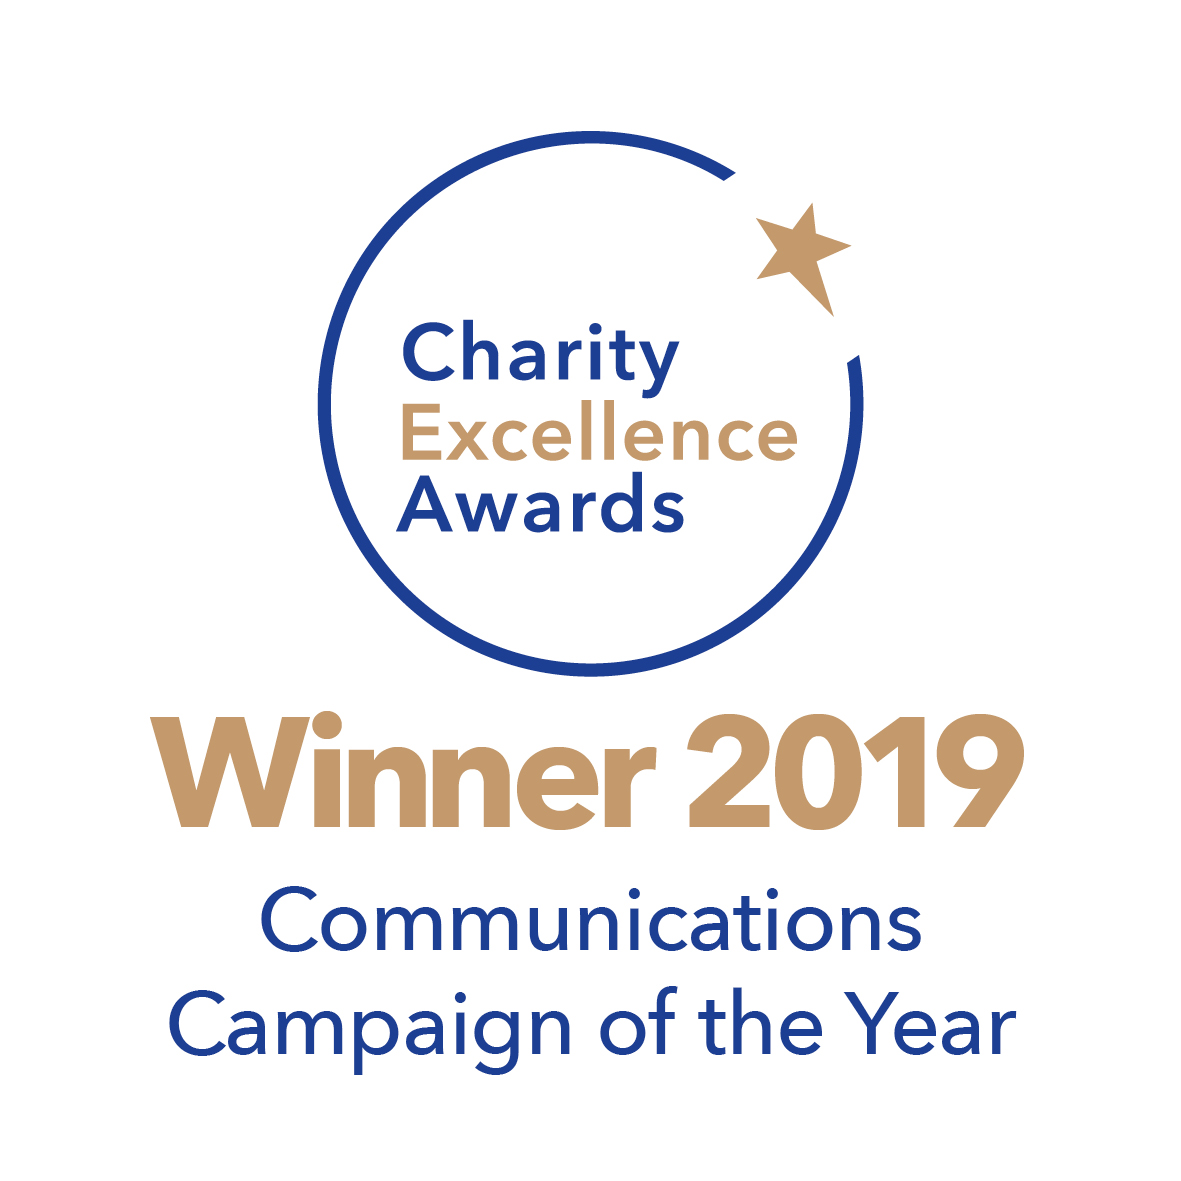 Charity Awards Winner_CAMPAIGN.jpg